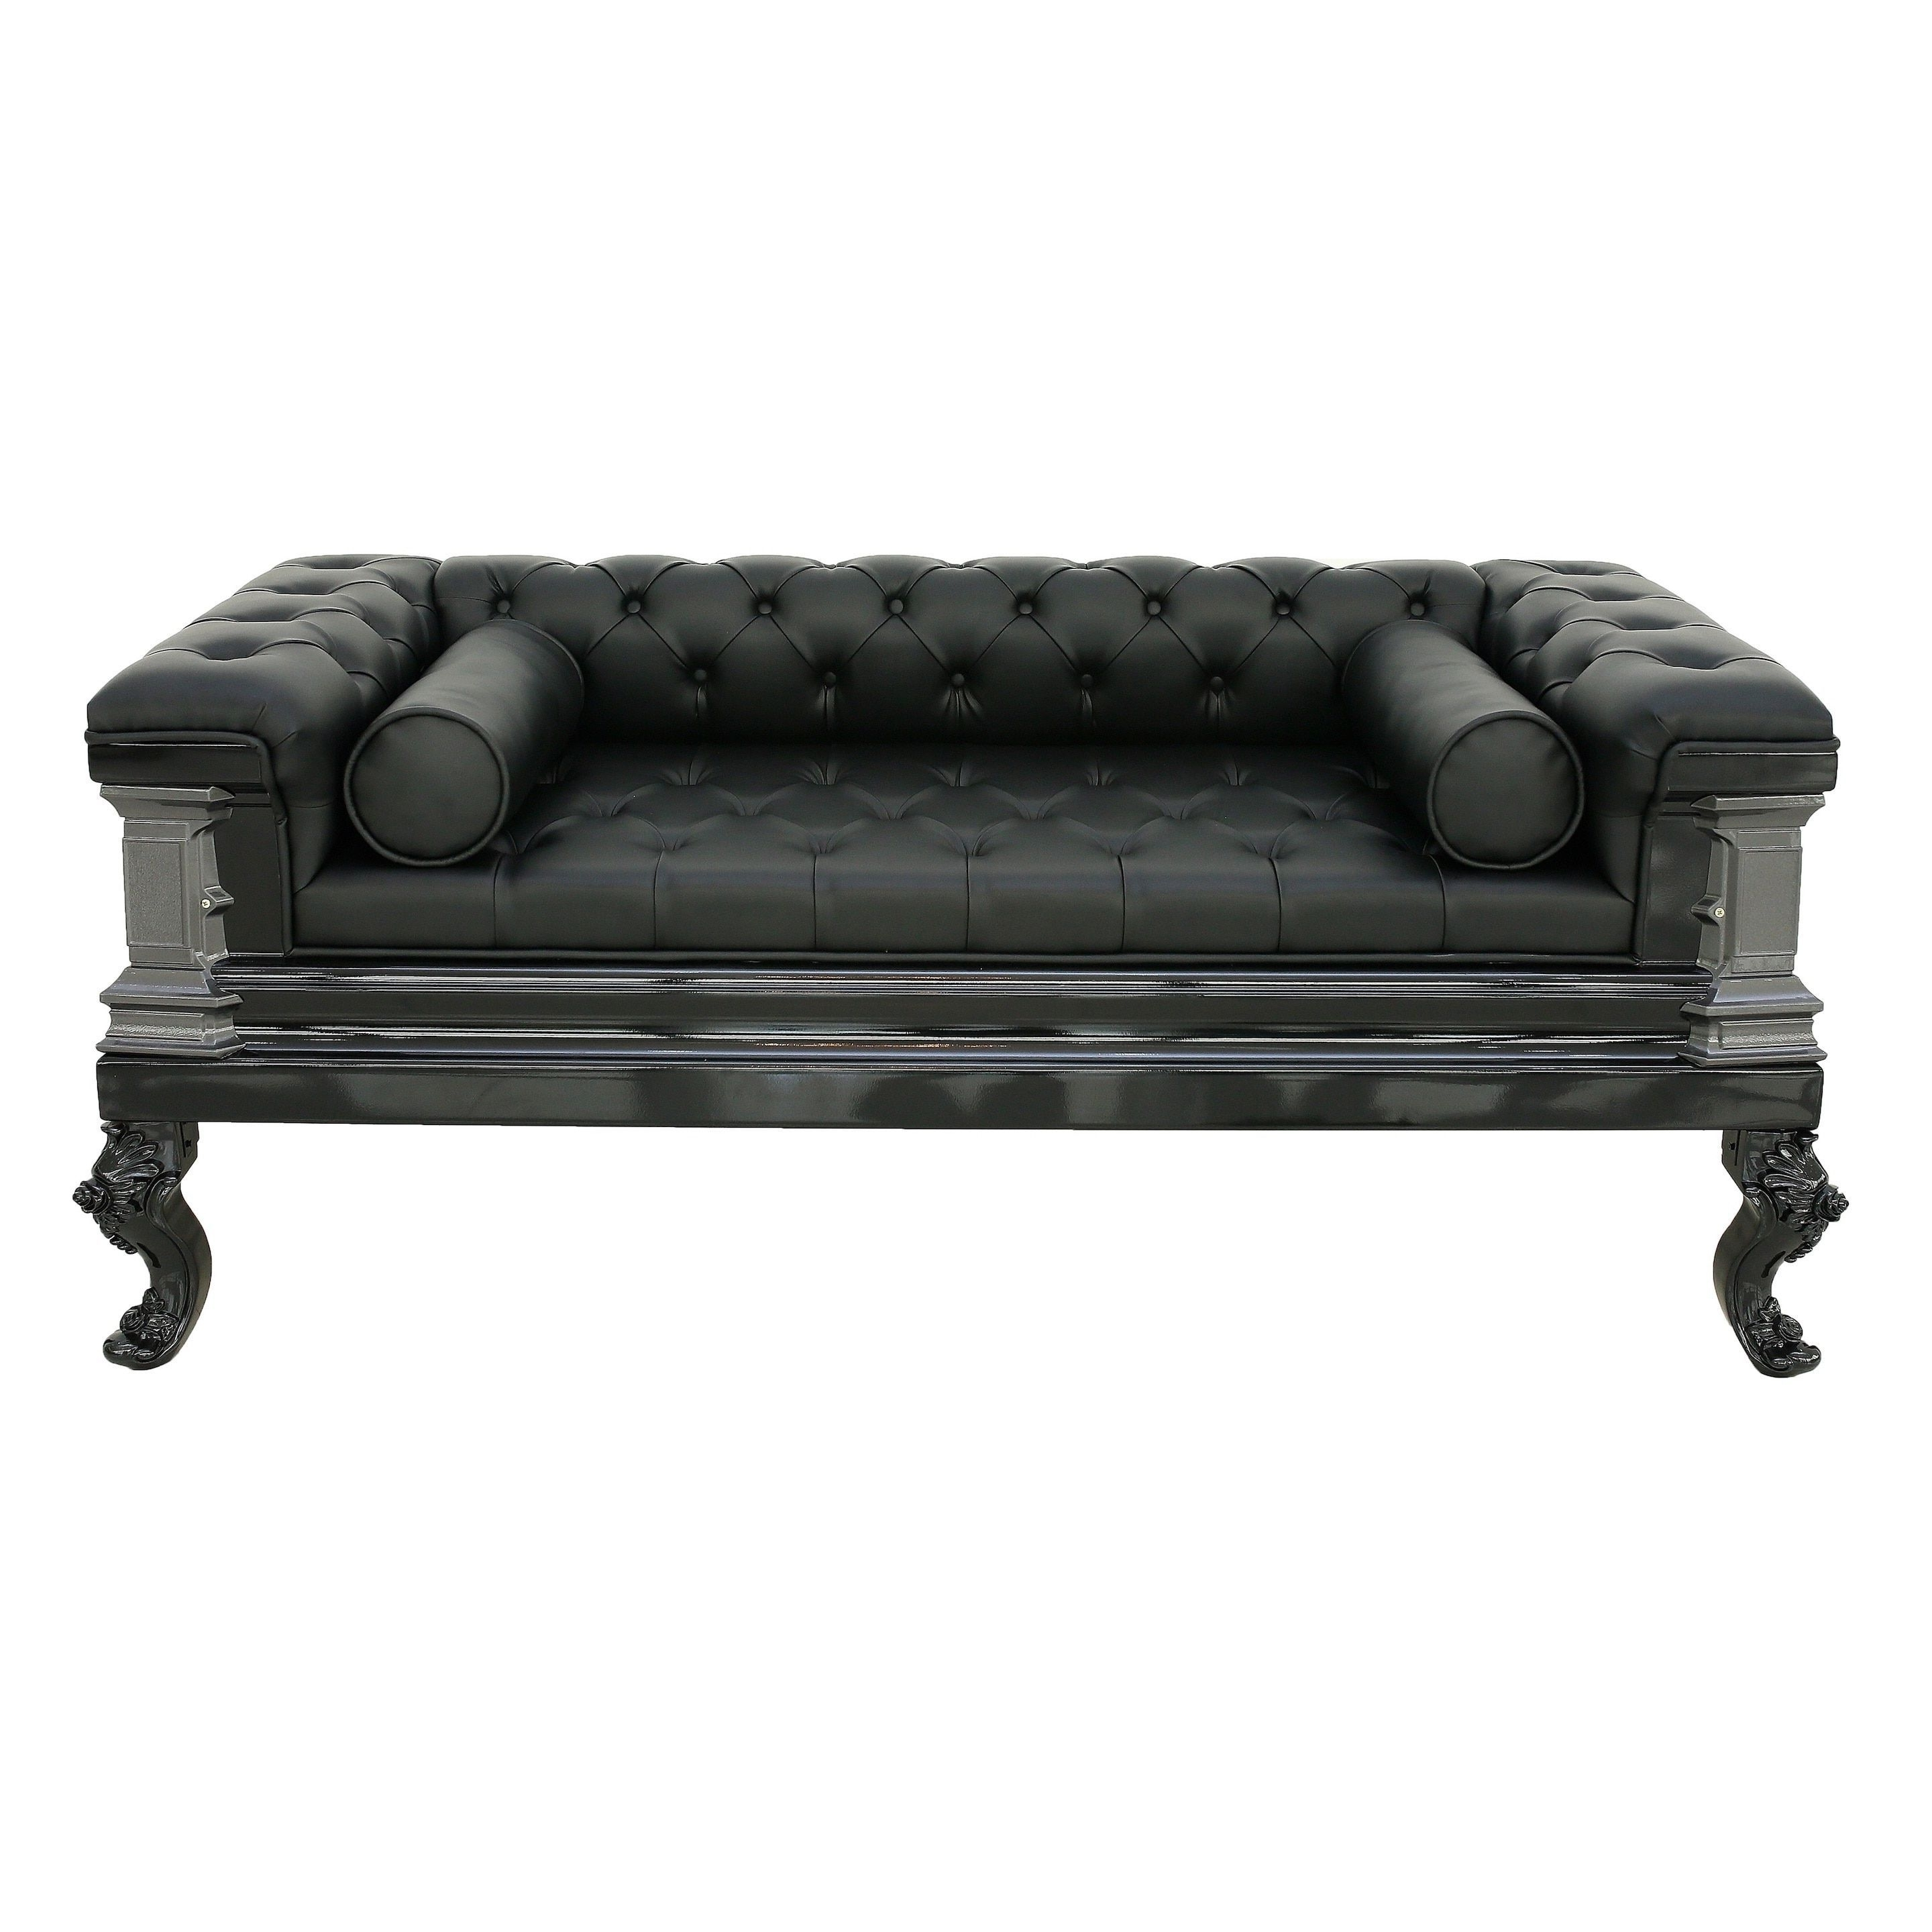 Gothic, Black Leather Sofas With Regard To Well Known Gothic Sofas (View 10 of 15)